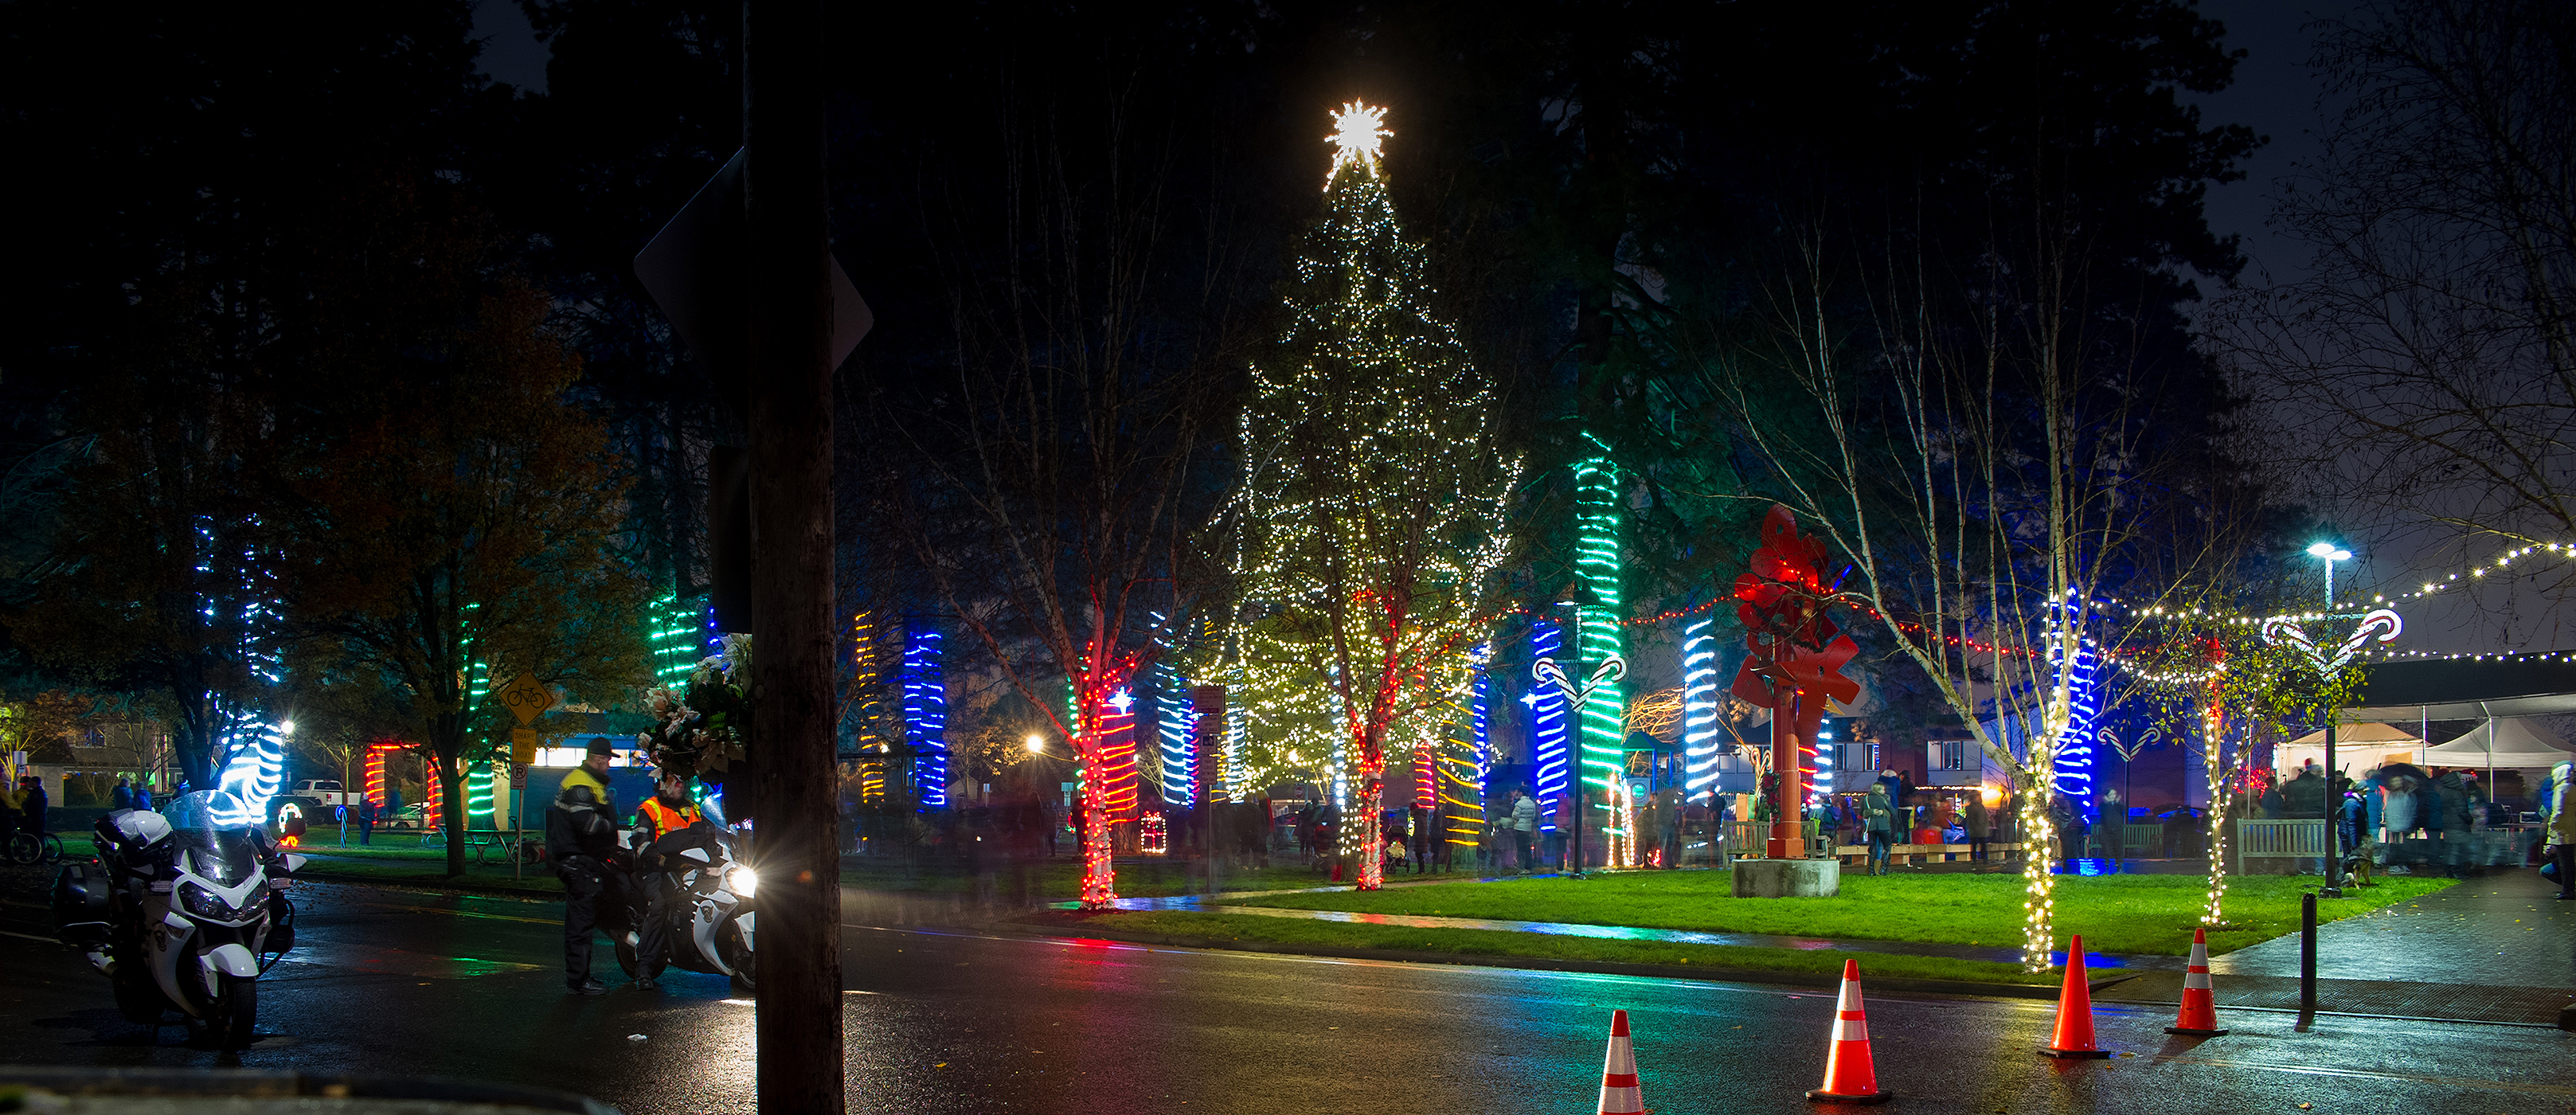 Christmas in Beaverton, OR